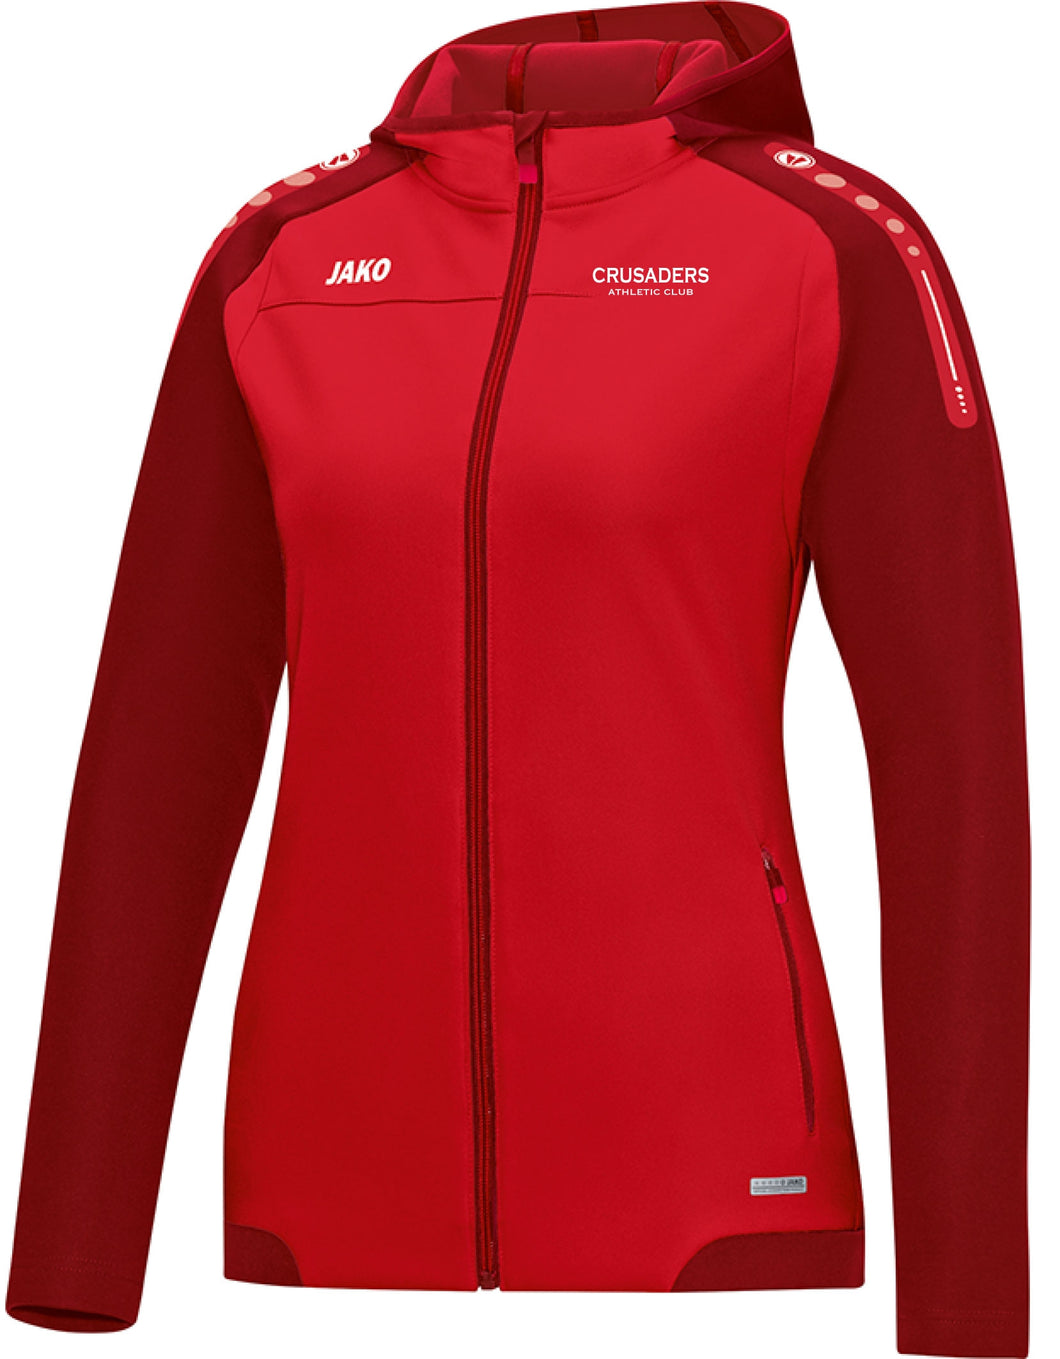 WOMENS JAKO CRUSADERS AC HOODY WITH TEXT CAC6817TW RED WITH TEXT